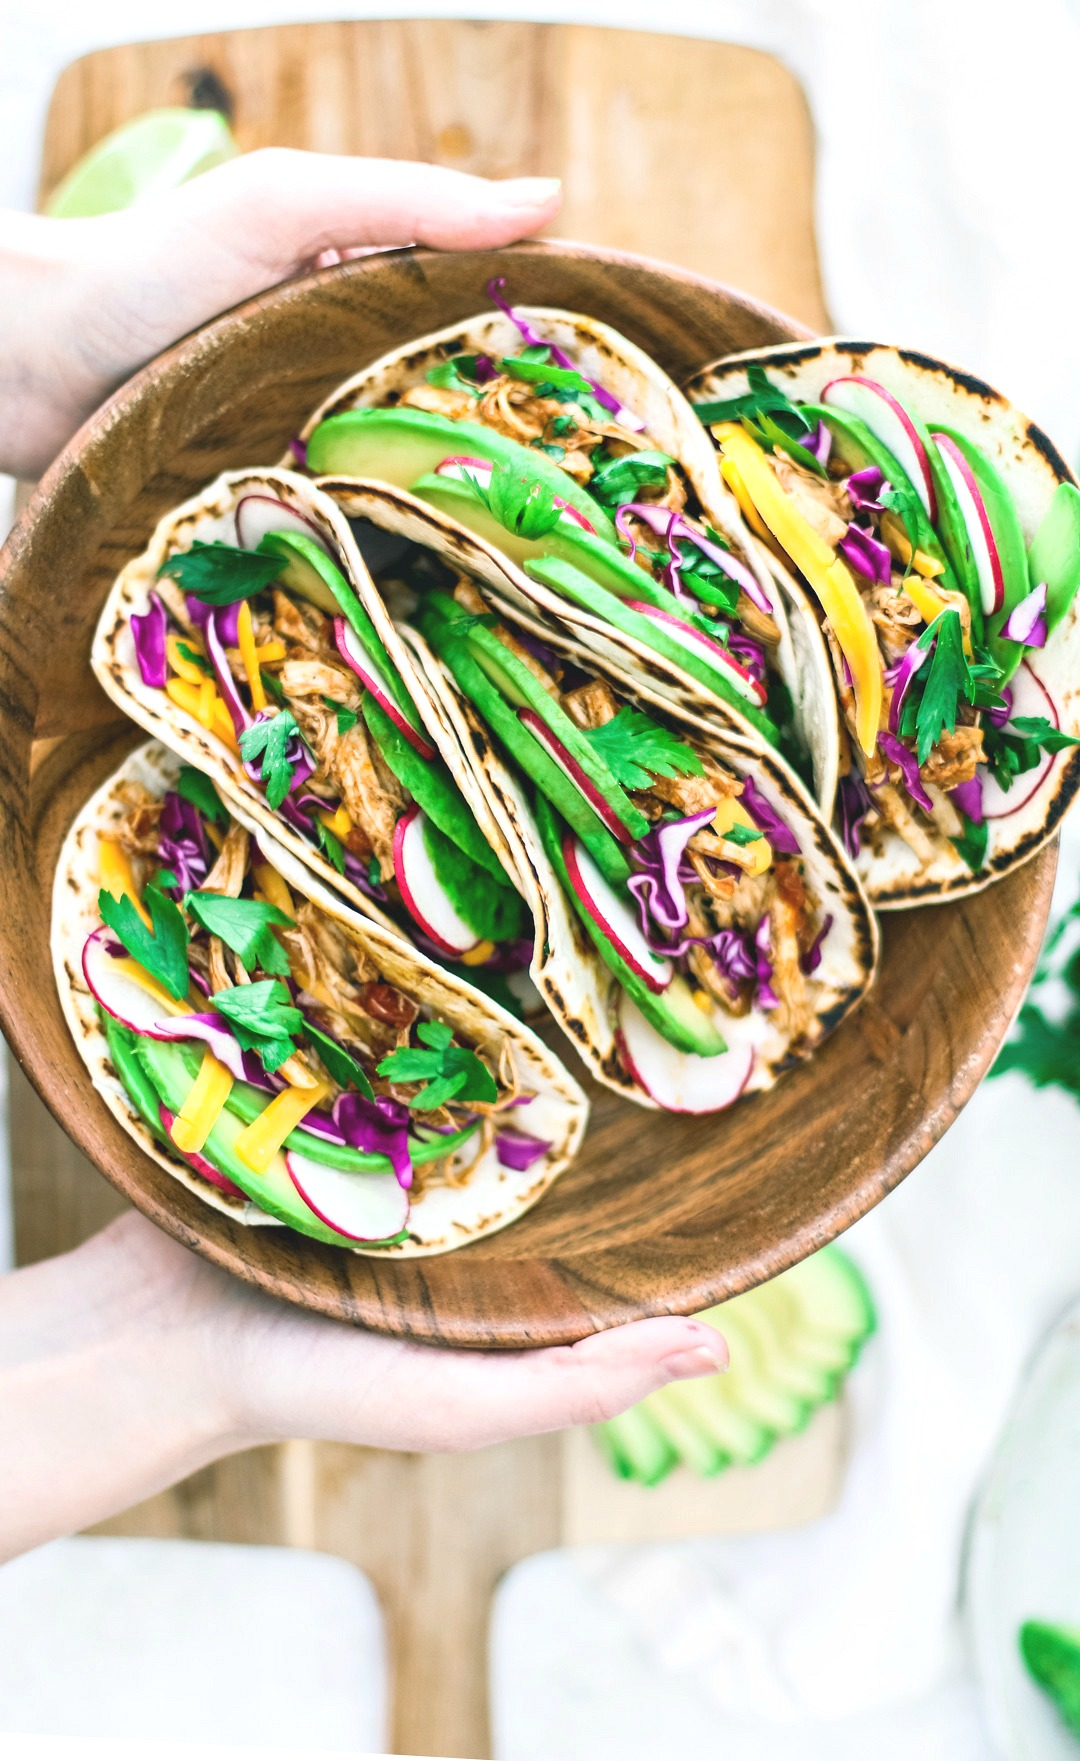 Hands holding bowl of colorful tacos.